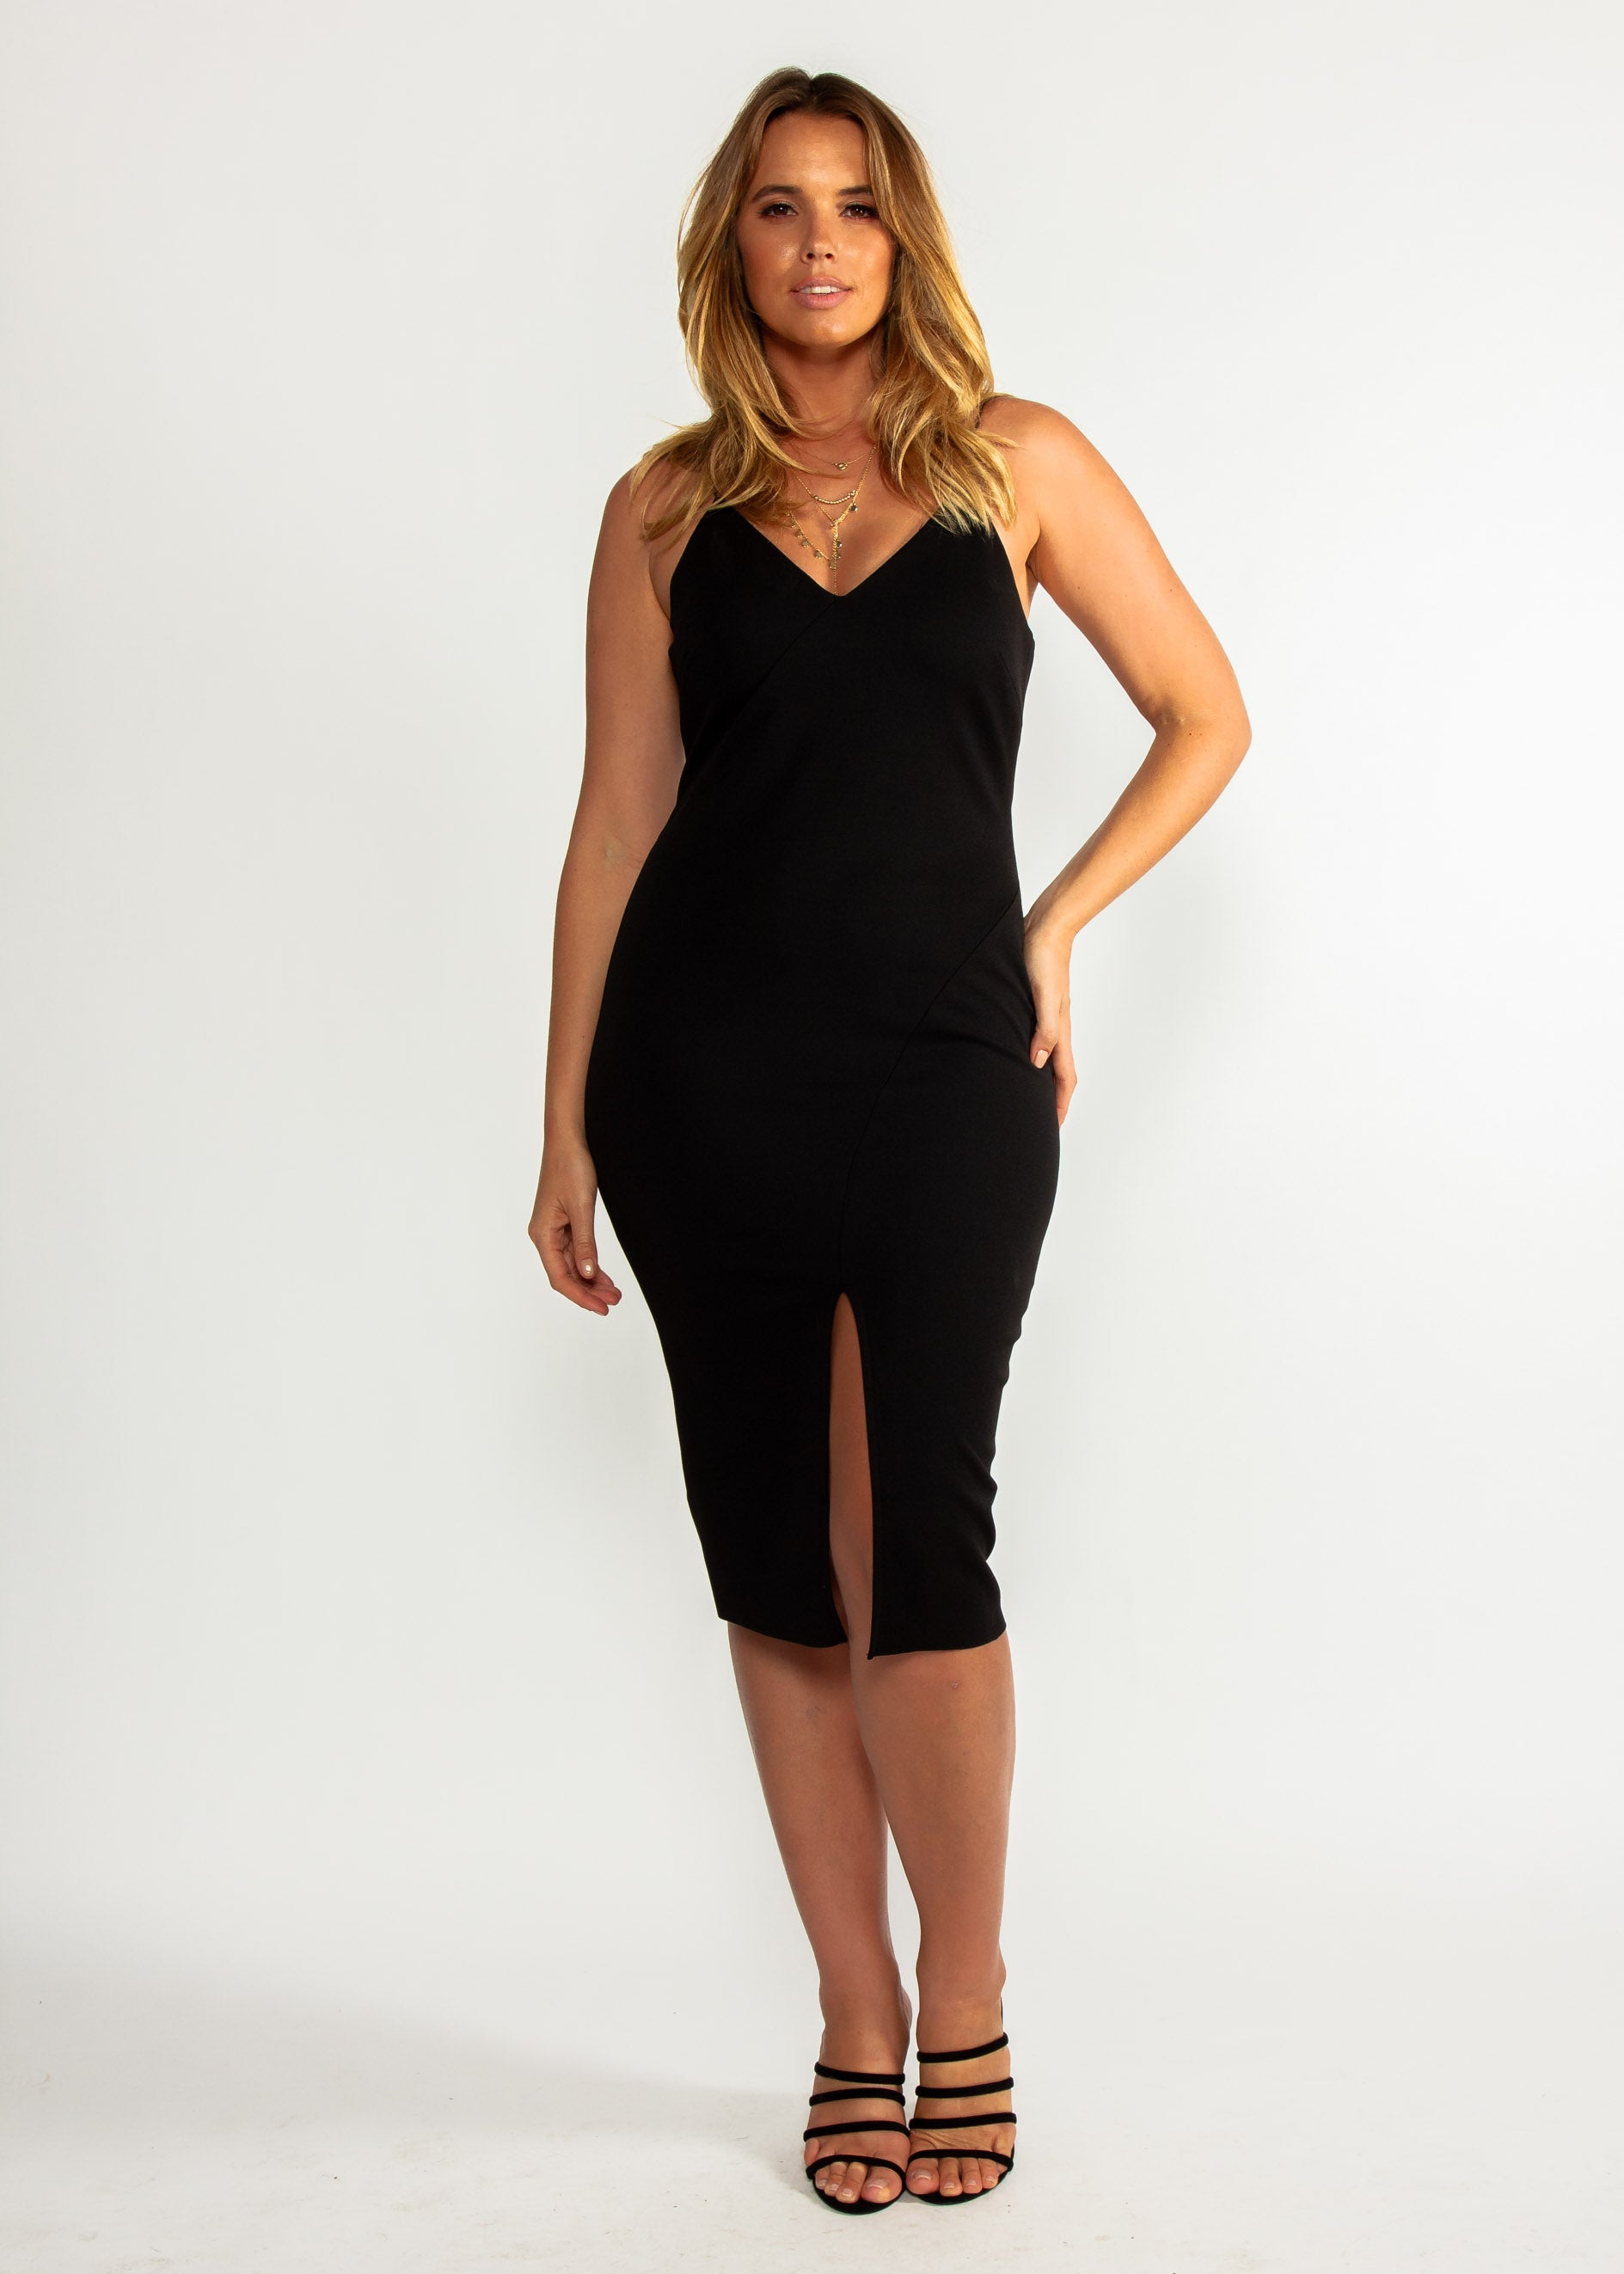 Change Your Mind Midi Dress - Black